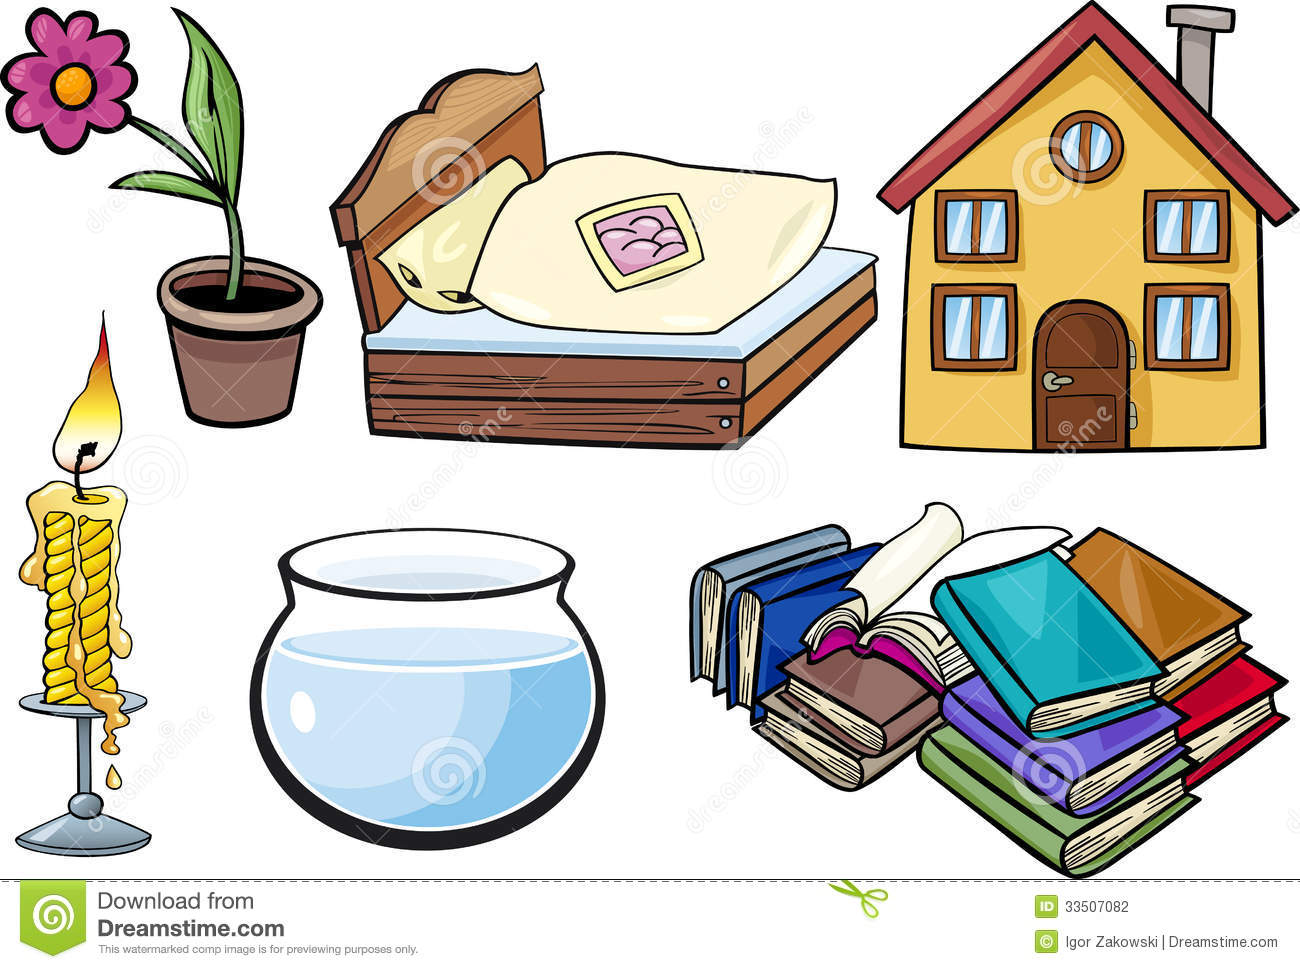 Trip Over Object Clipart.